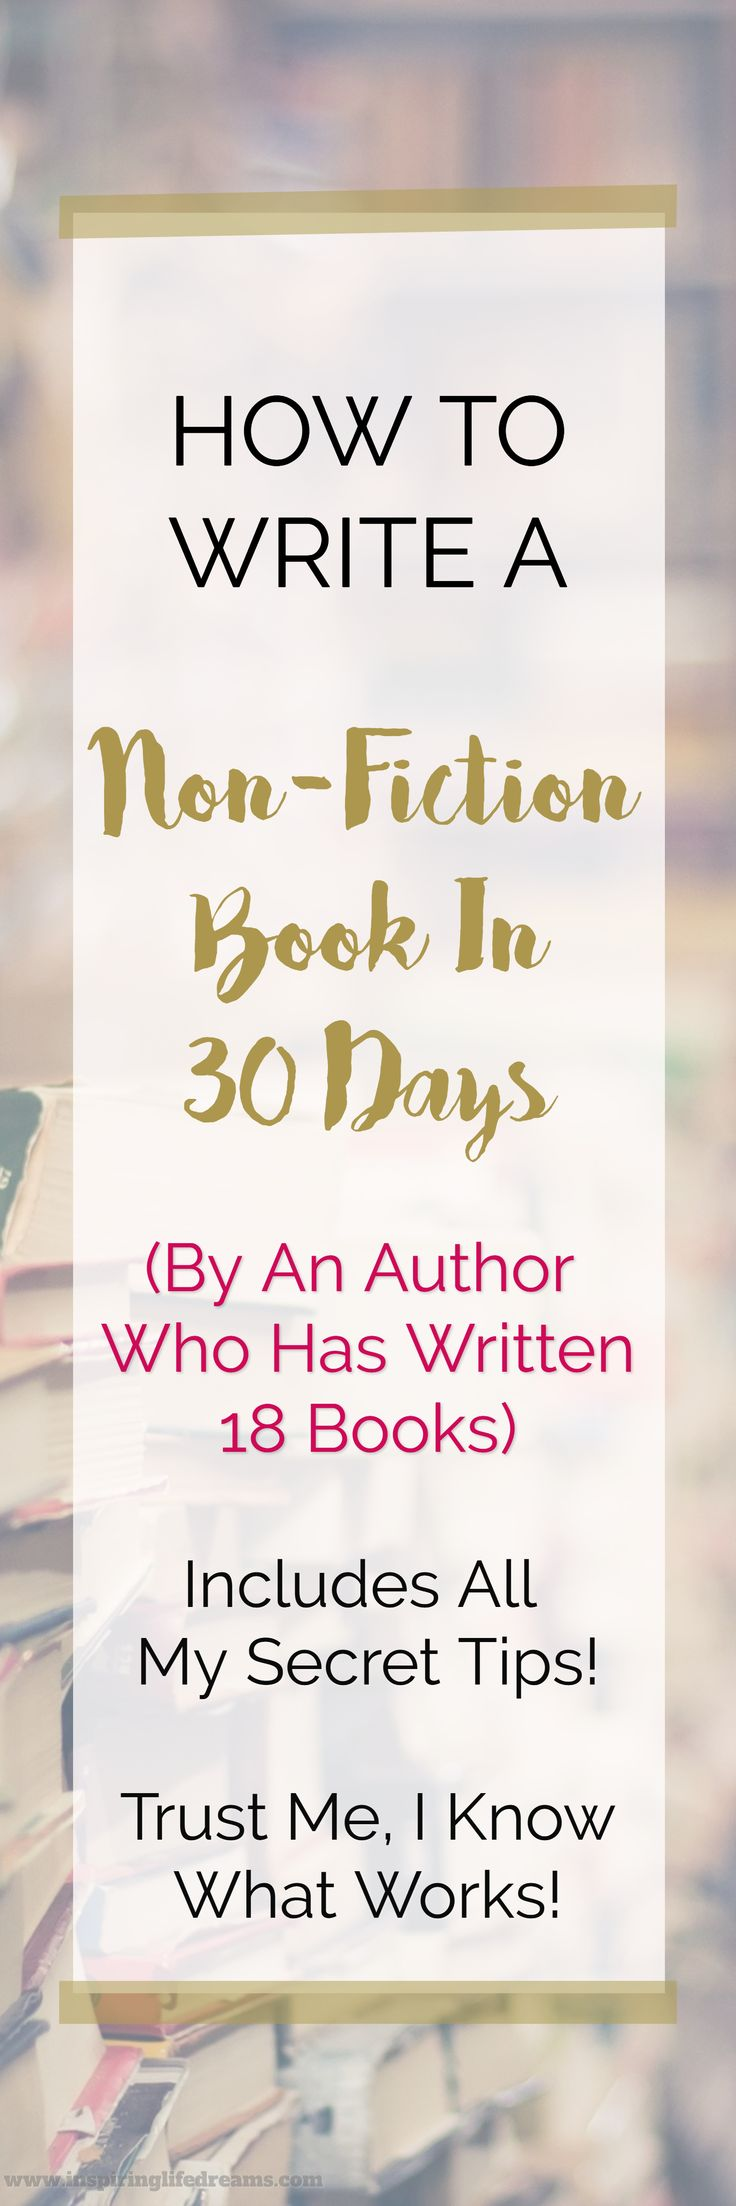 How To Write A Non-Fiction Book in 30 Days - By An Author who has written 18 books   Secret Best Writing Tips   Writing Tools   Writing Resource   How To Write A Book   Advice For Writers   Writers Plan   Novel Outline   Writing How To Guide For Writers